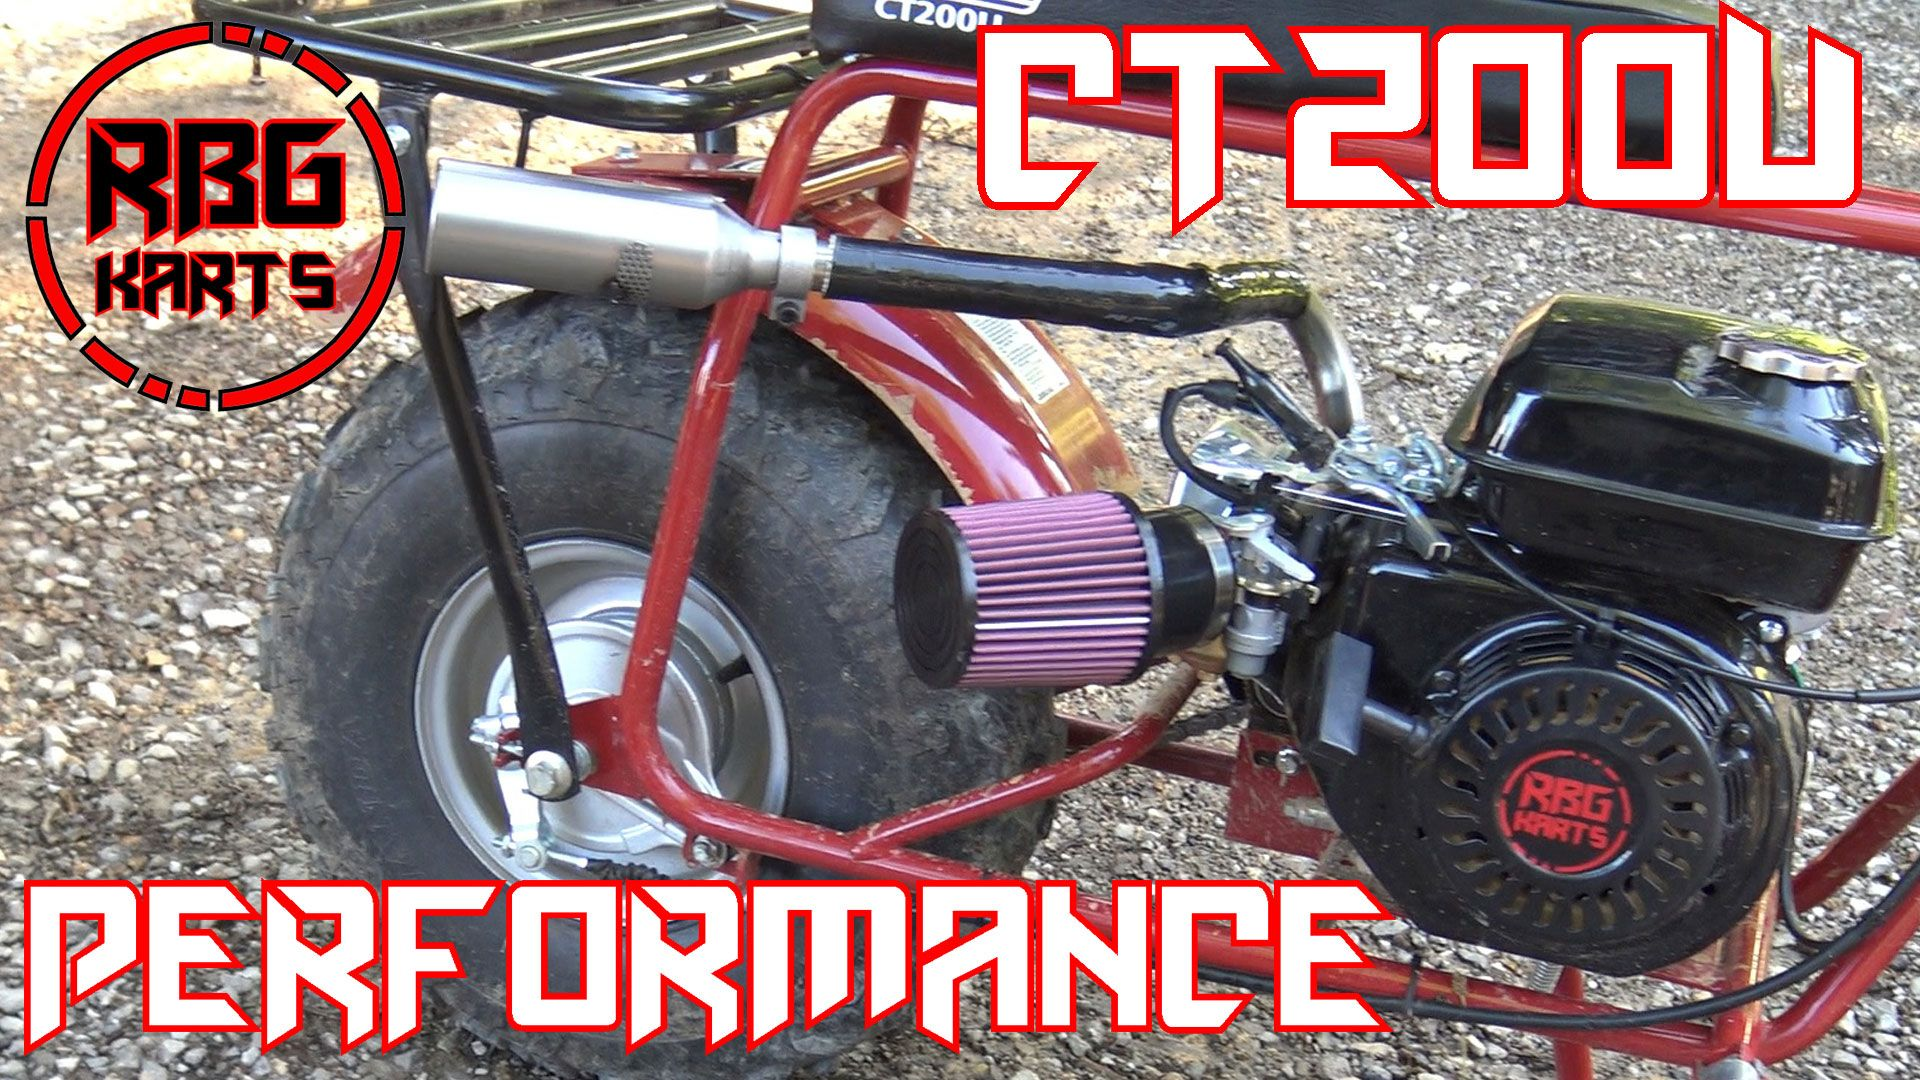 Red Beard S Garage Puts A Gopowersports Com Performance Kit On The Coleman Ct200u Mini Bike Gives A Review Check It Out On Mini Bike Bike Performance Parts